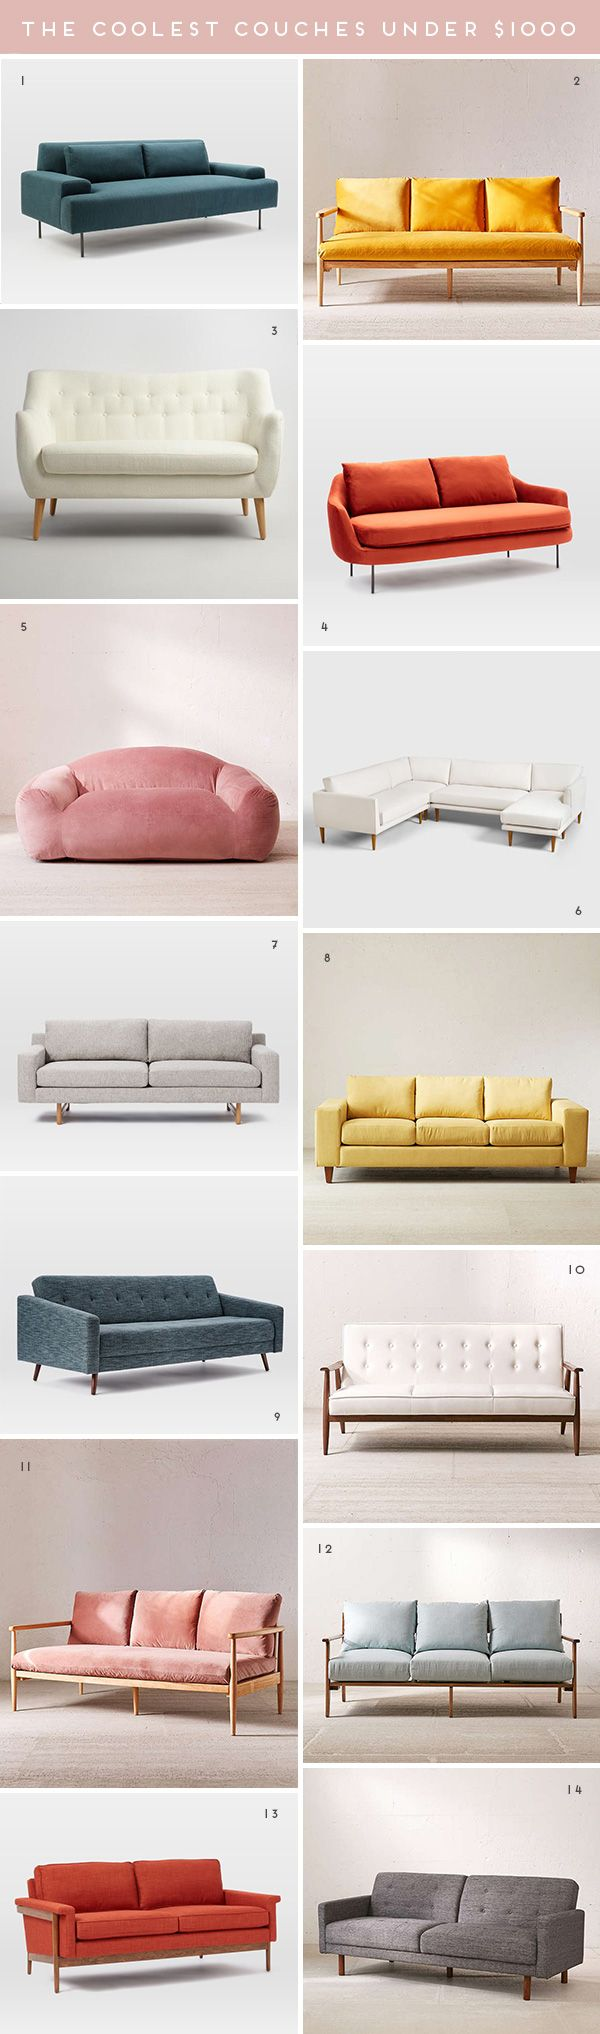 The Coolest Couches Under $1,000